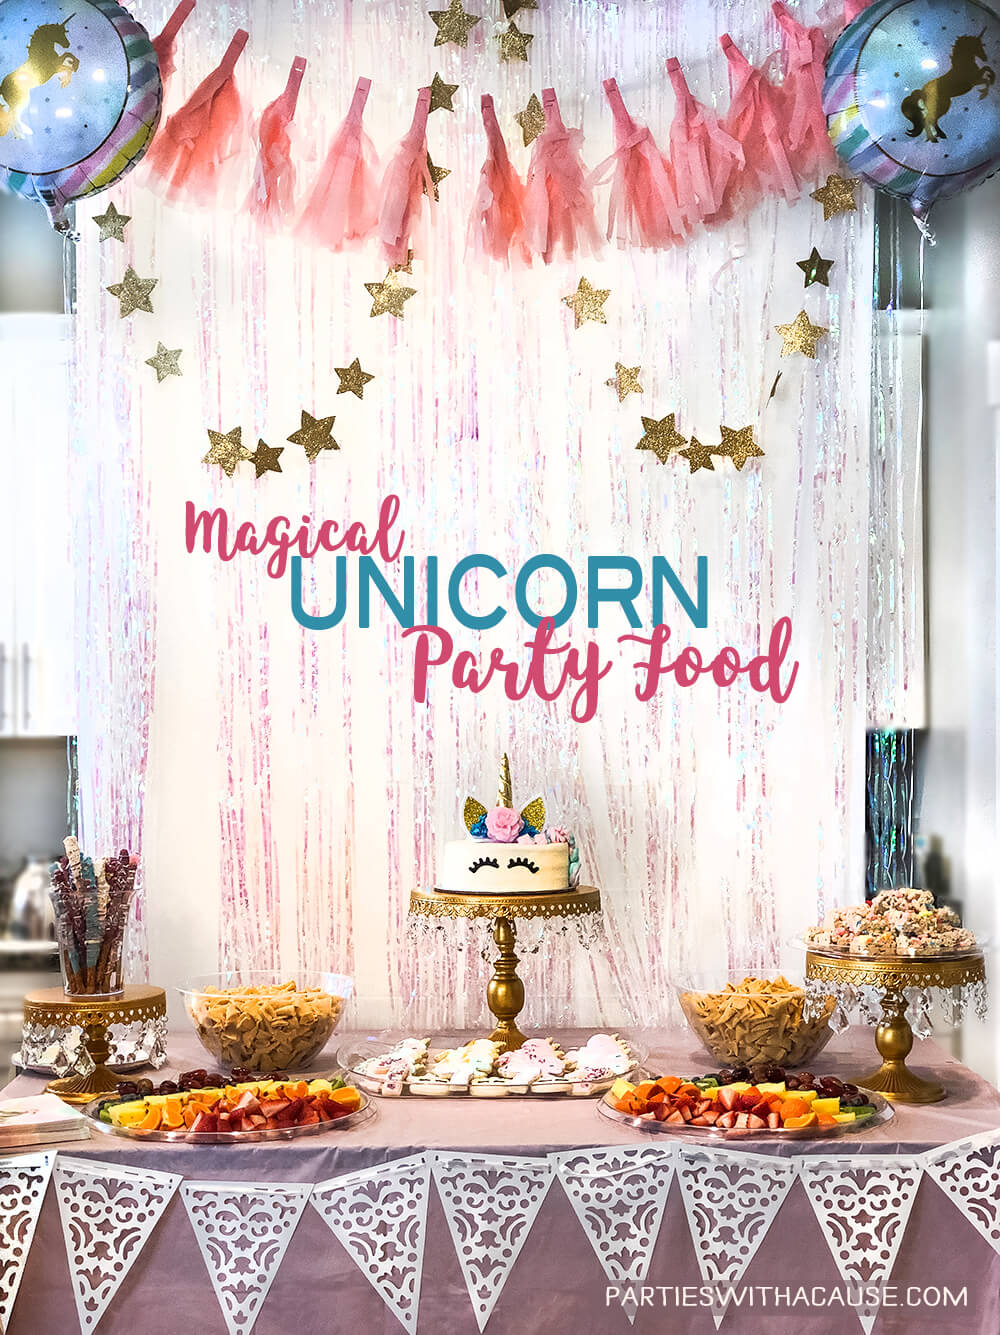 15+ Unicorn Birthday Party Food Ideas - Parties With A Cause